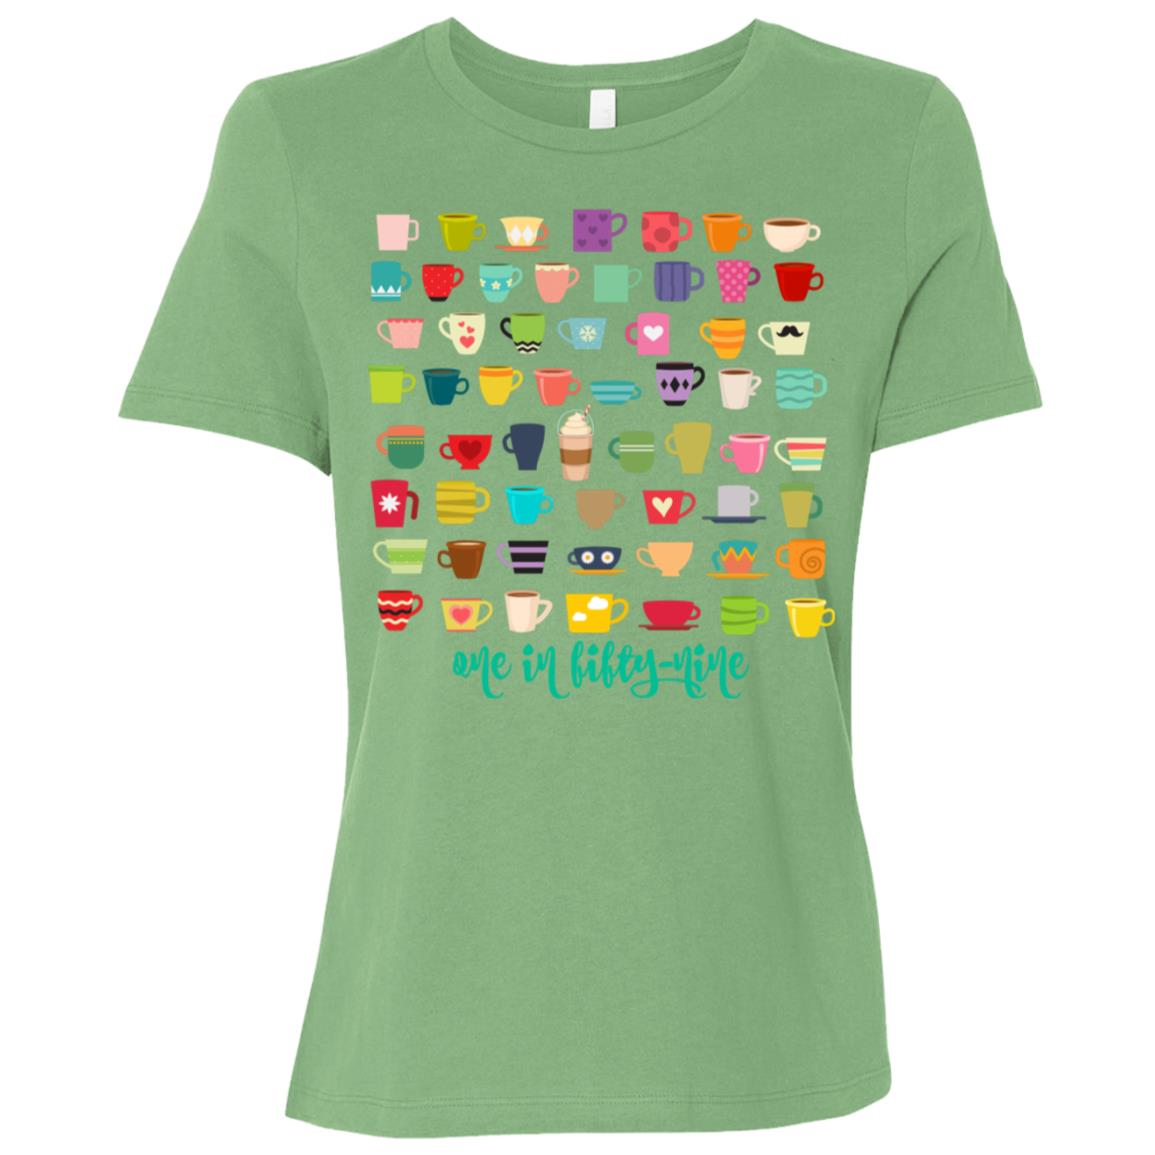 Cdc reported autism rate is 1 in 59. #nomorepuzzlepieces-2 Women Short Sleeve T-Shirt